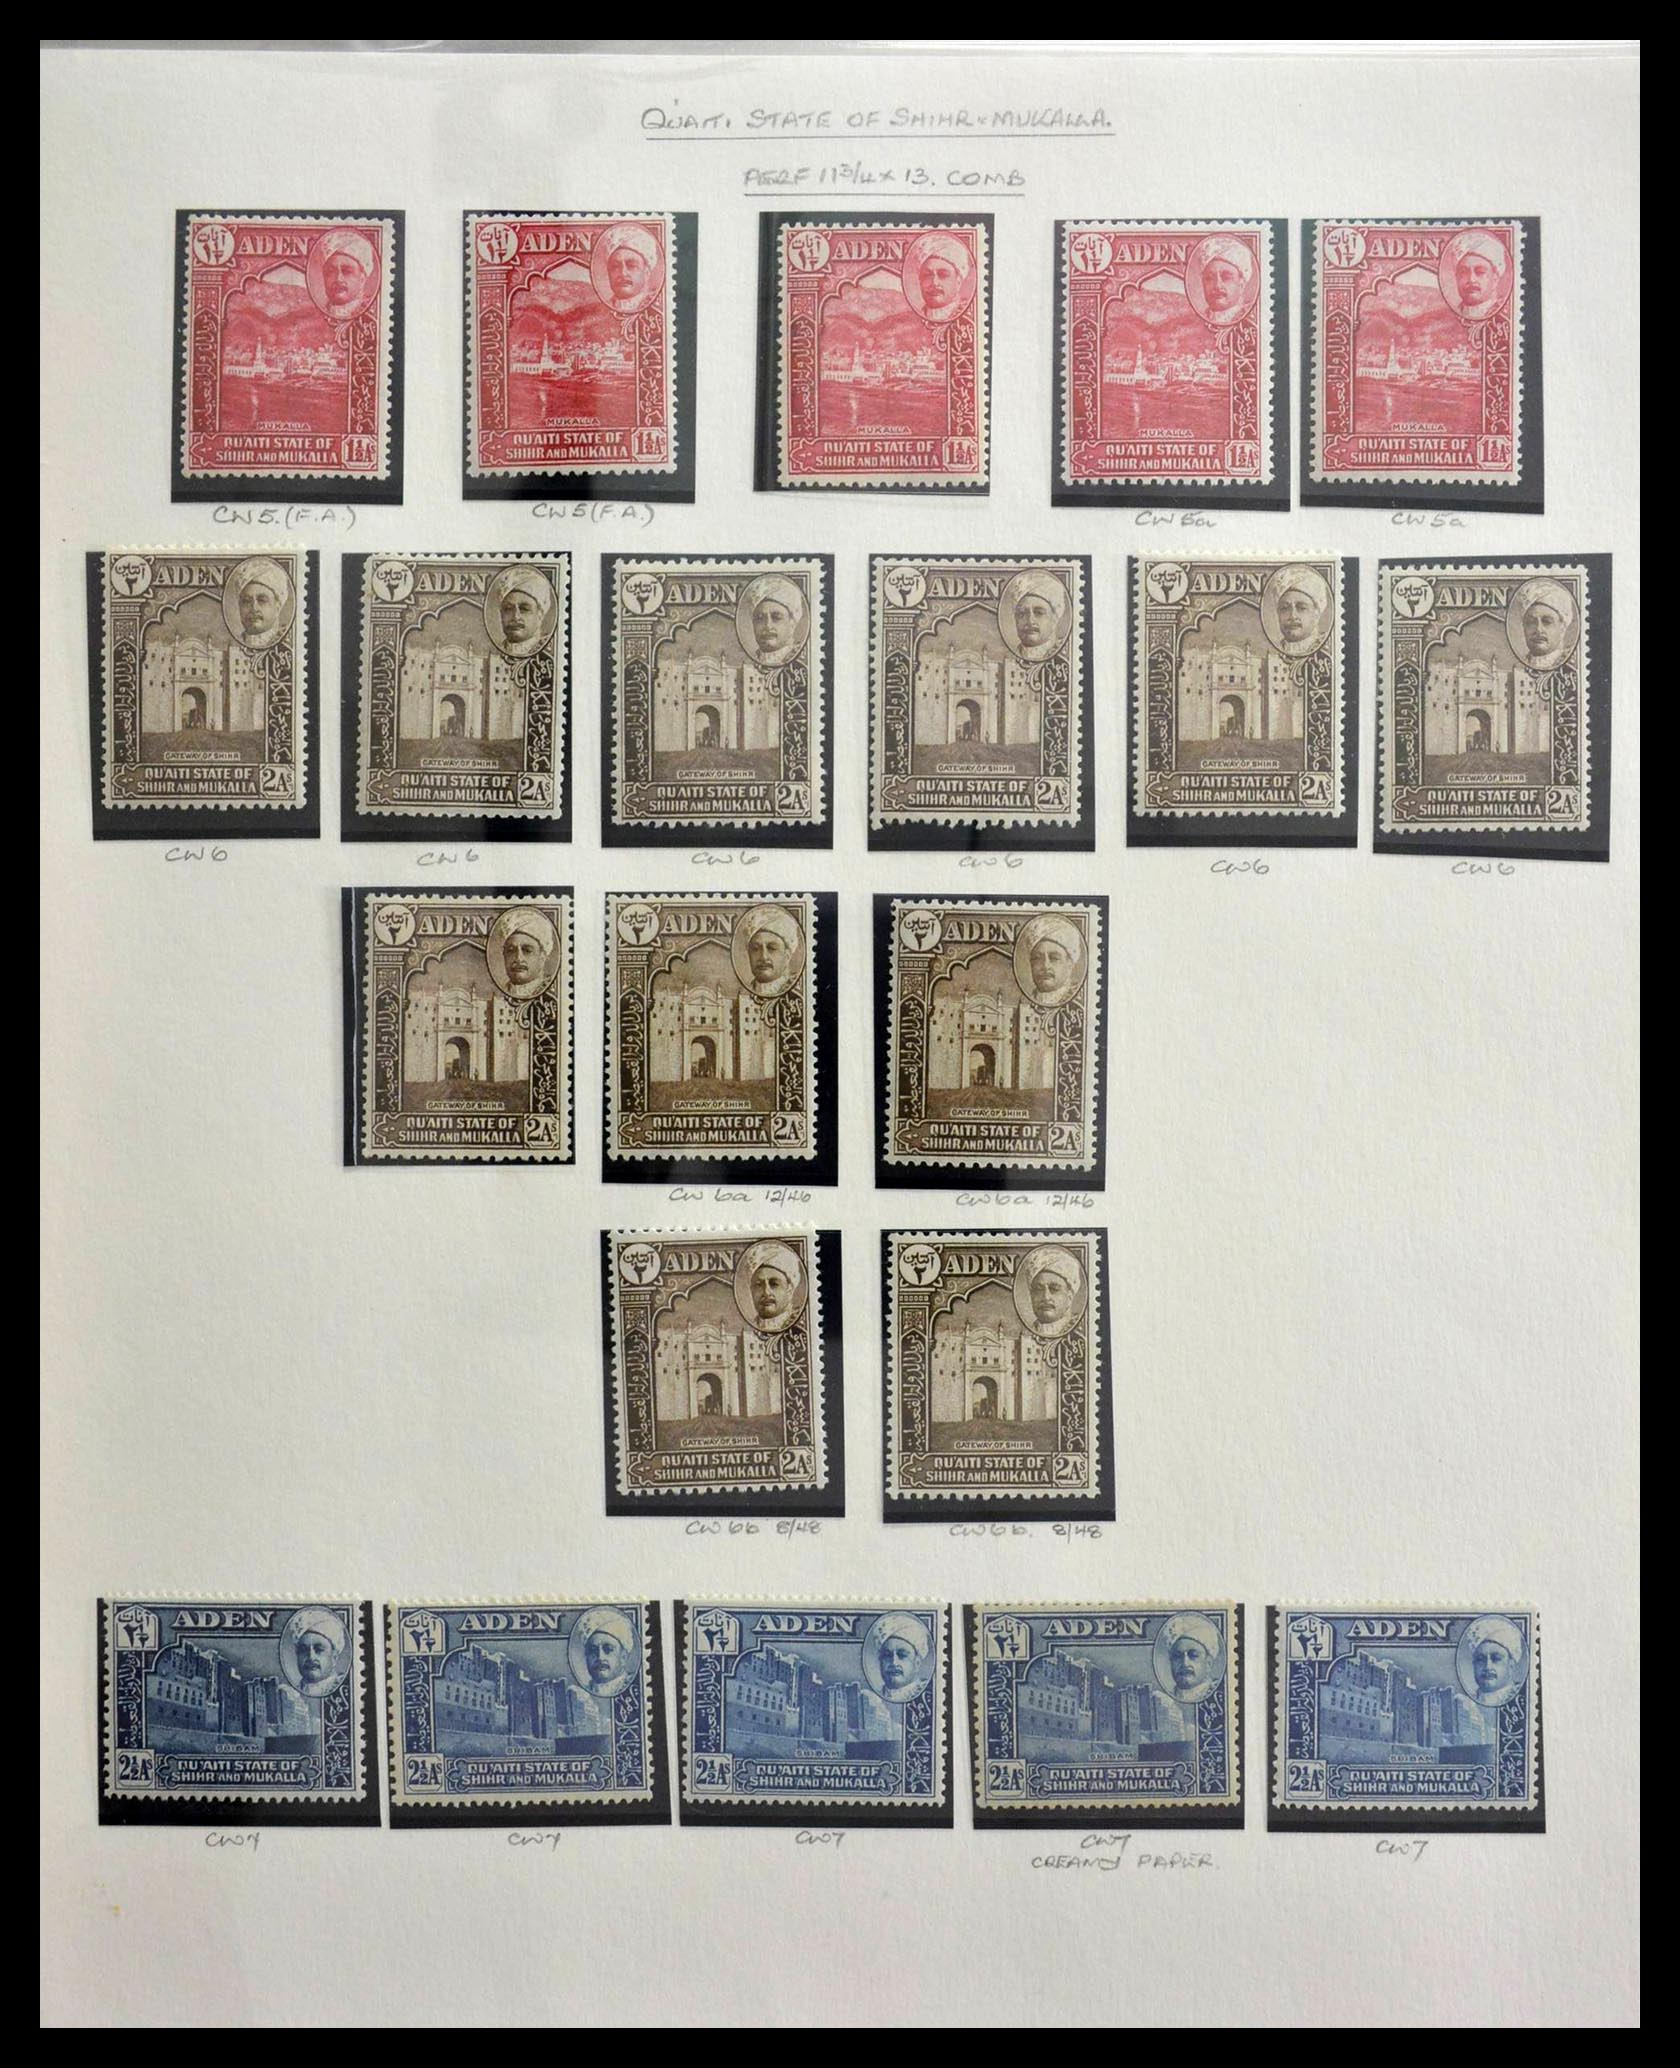 28672 005 - Stamp collection 28672 Aden Qu'aiti State 1942-1966.